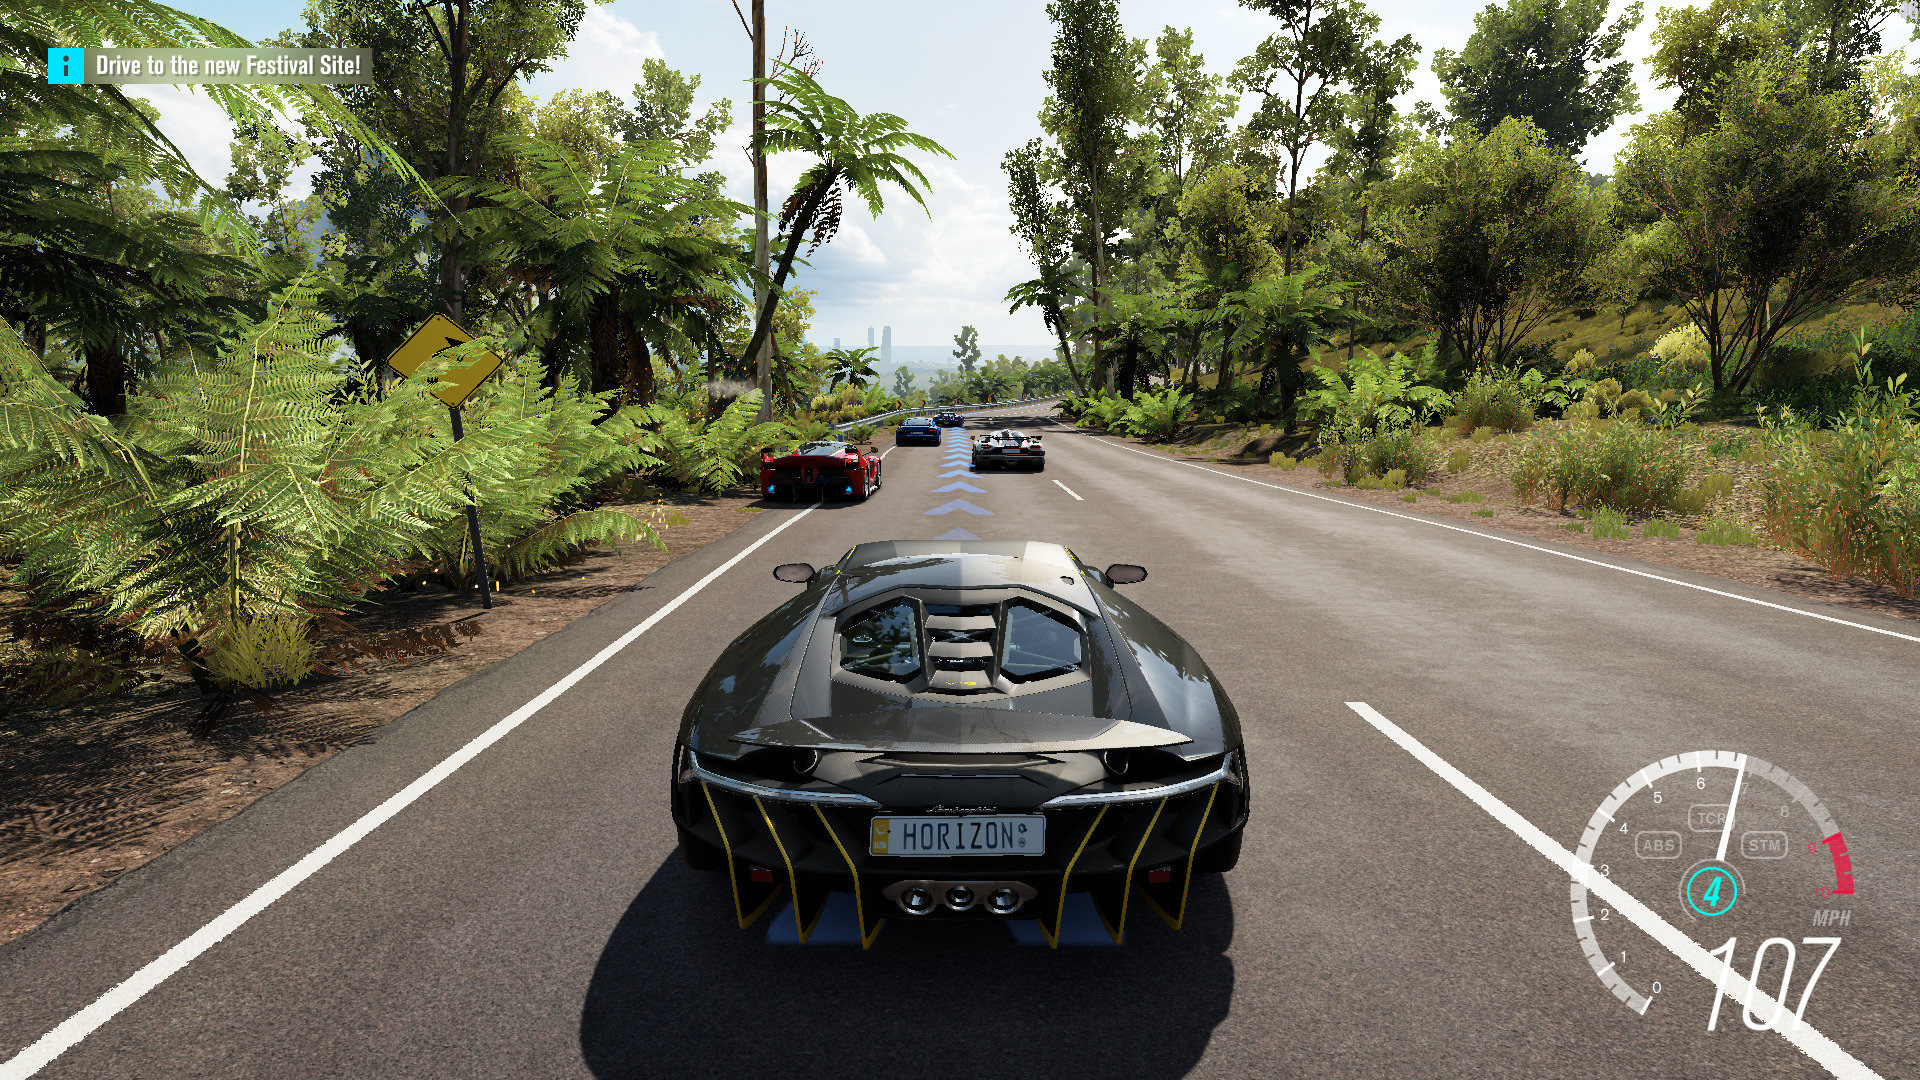 Forza Horizon 3 - PC Performance Analysis - DSOGaming